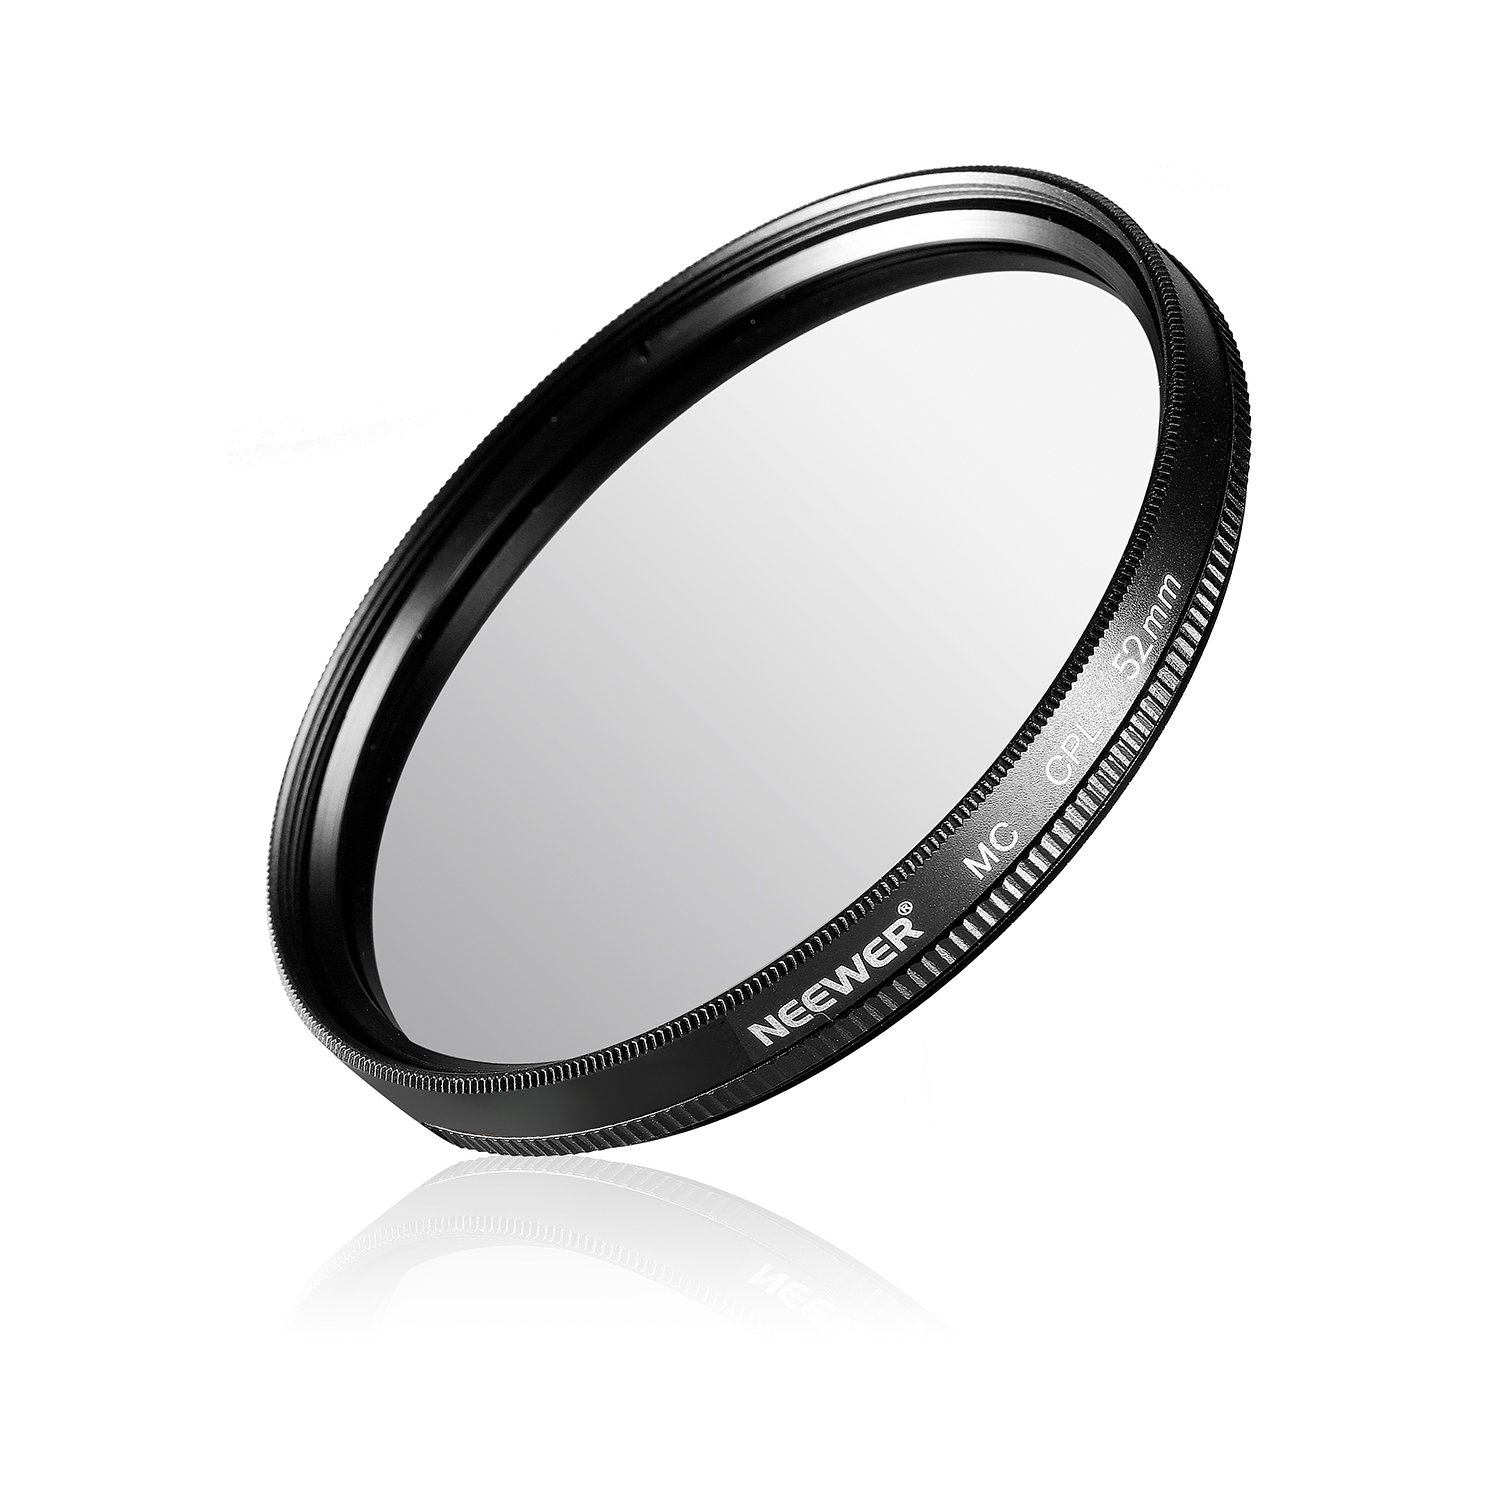 Neewer® 77MM CPL Circular Polarizer Filter Multi-Coated with Microfiber Cleaning Cloth for Camera Lens with a 77mm Filter Thread